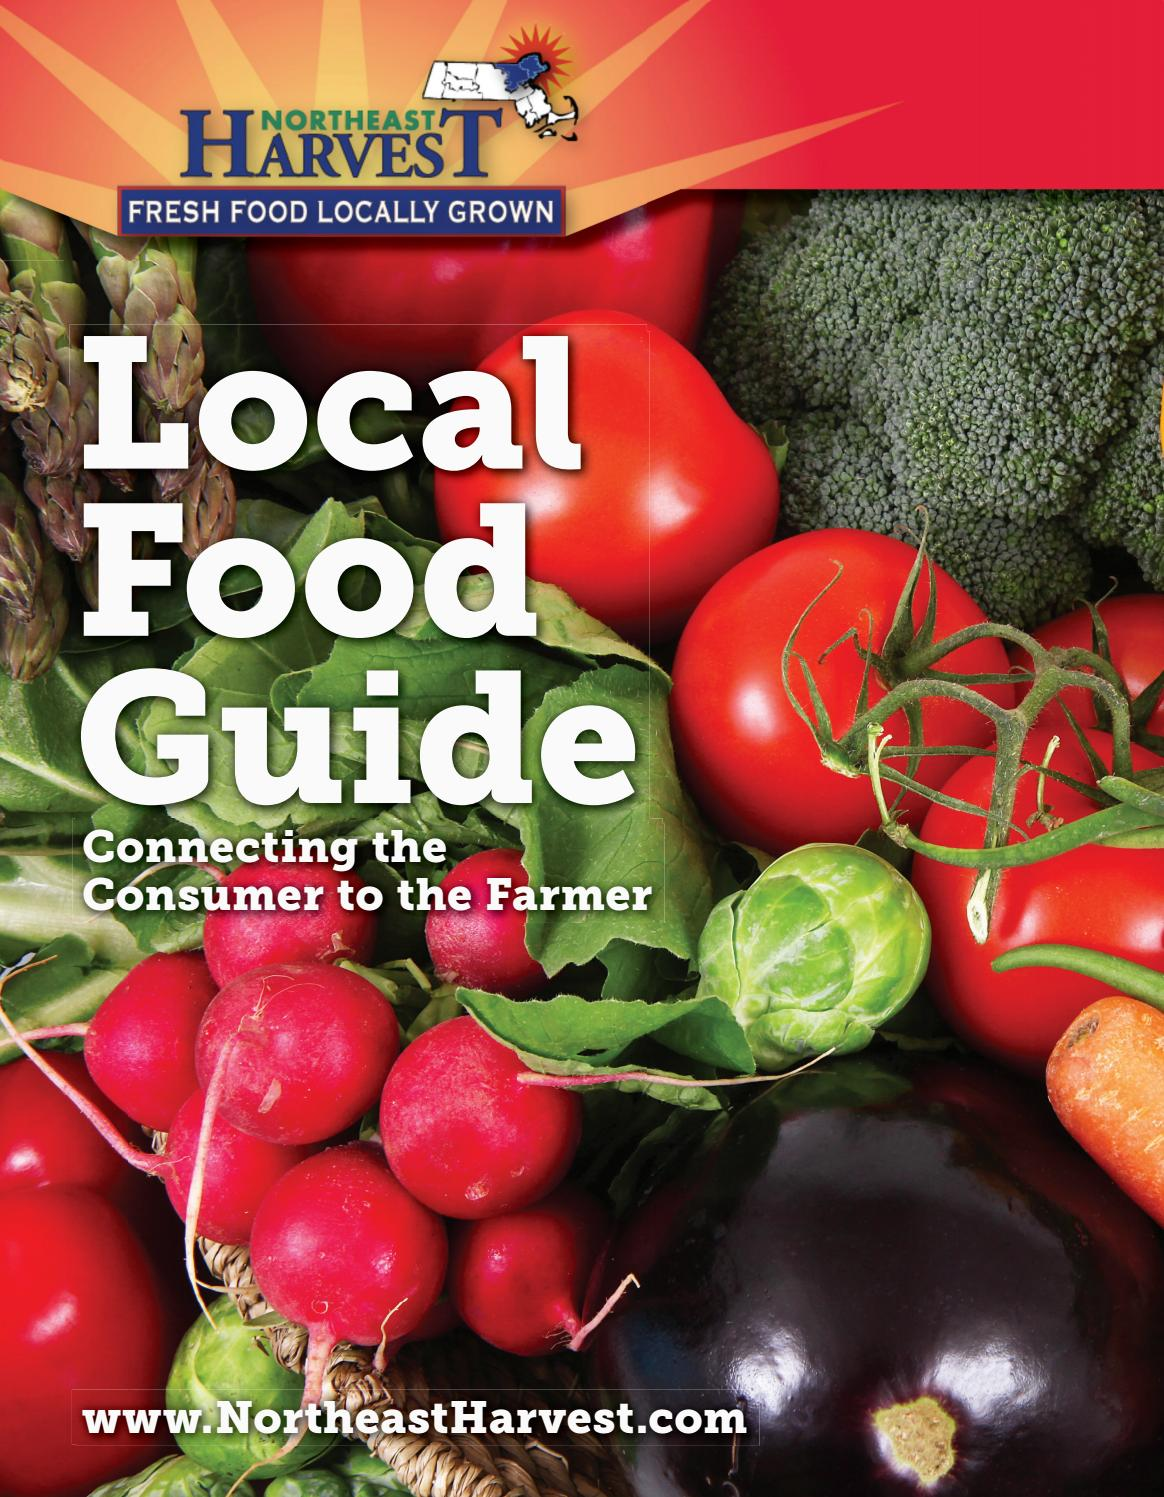 Northeast Harvest Local food Guide 2018 by